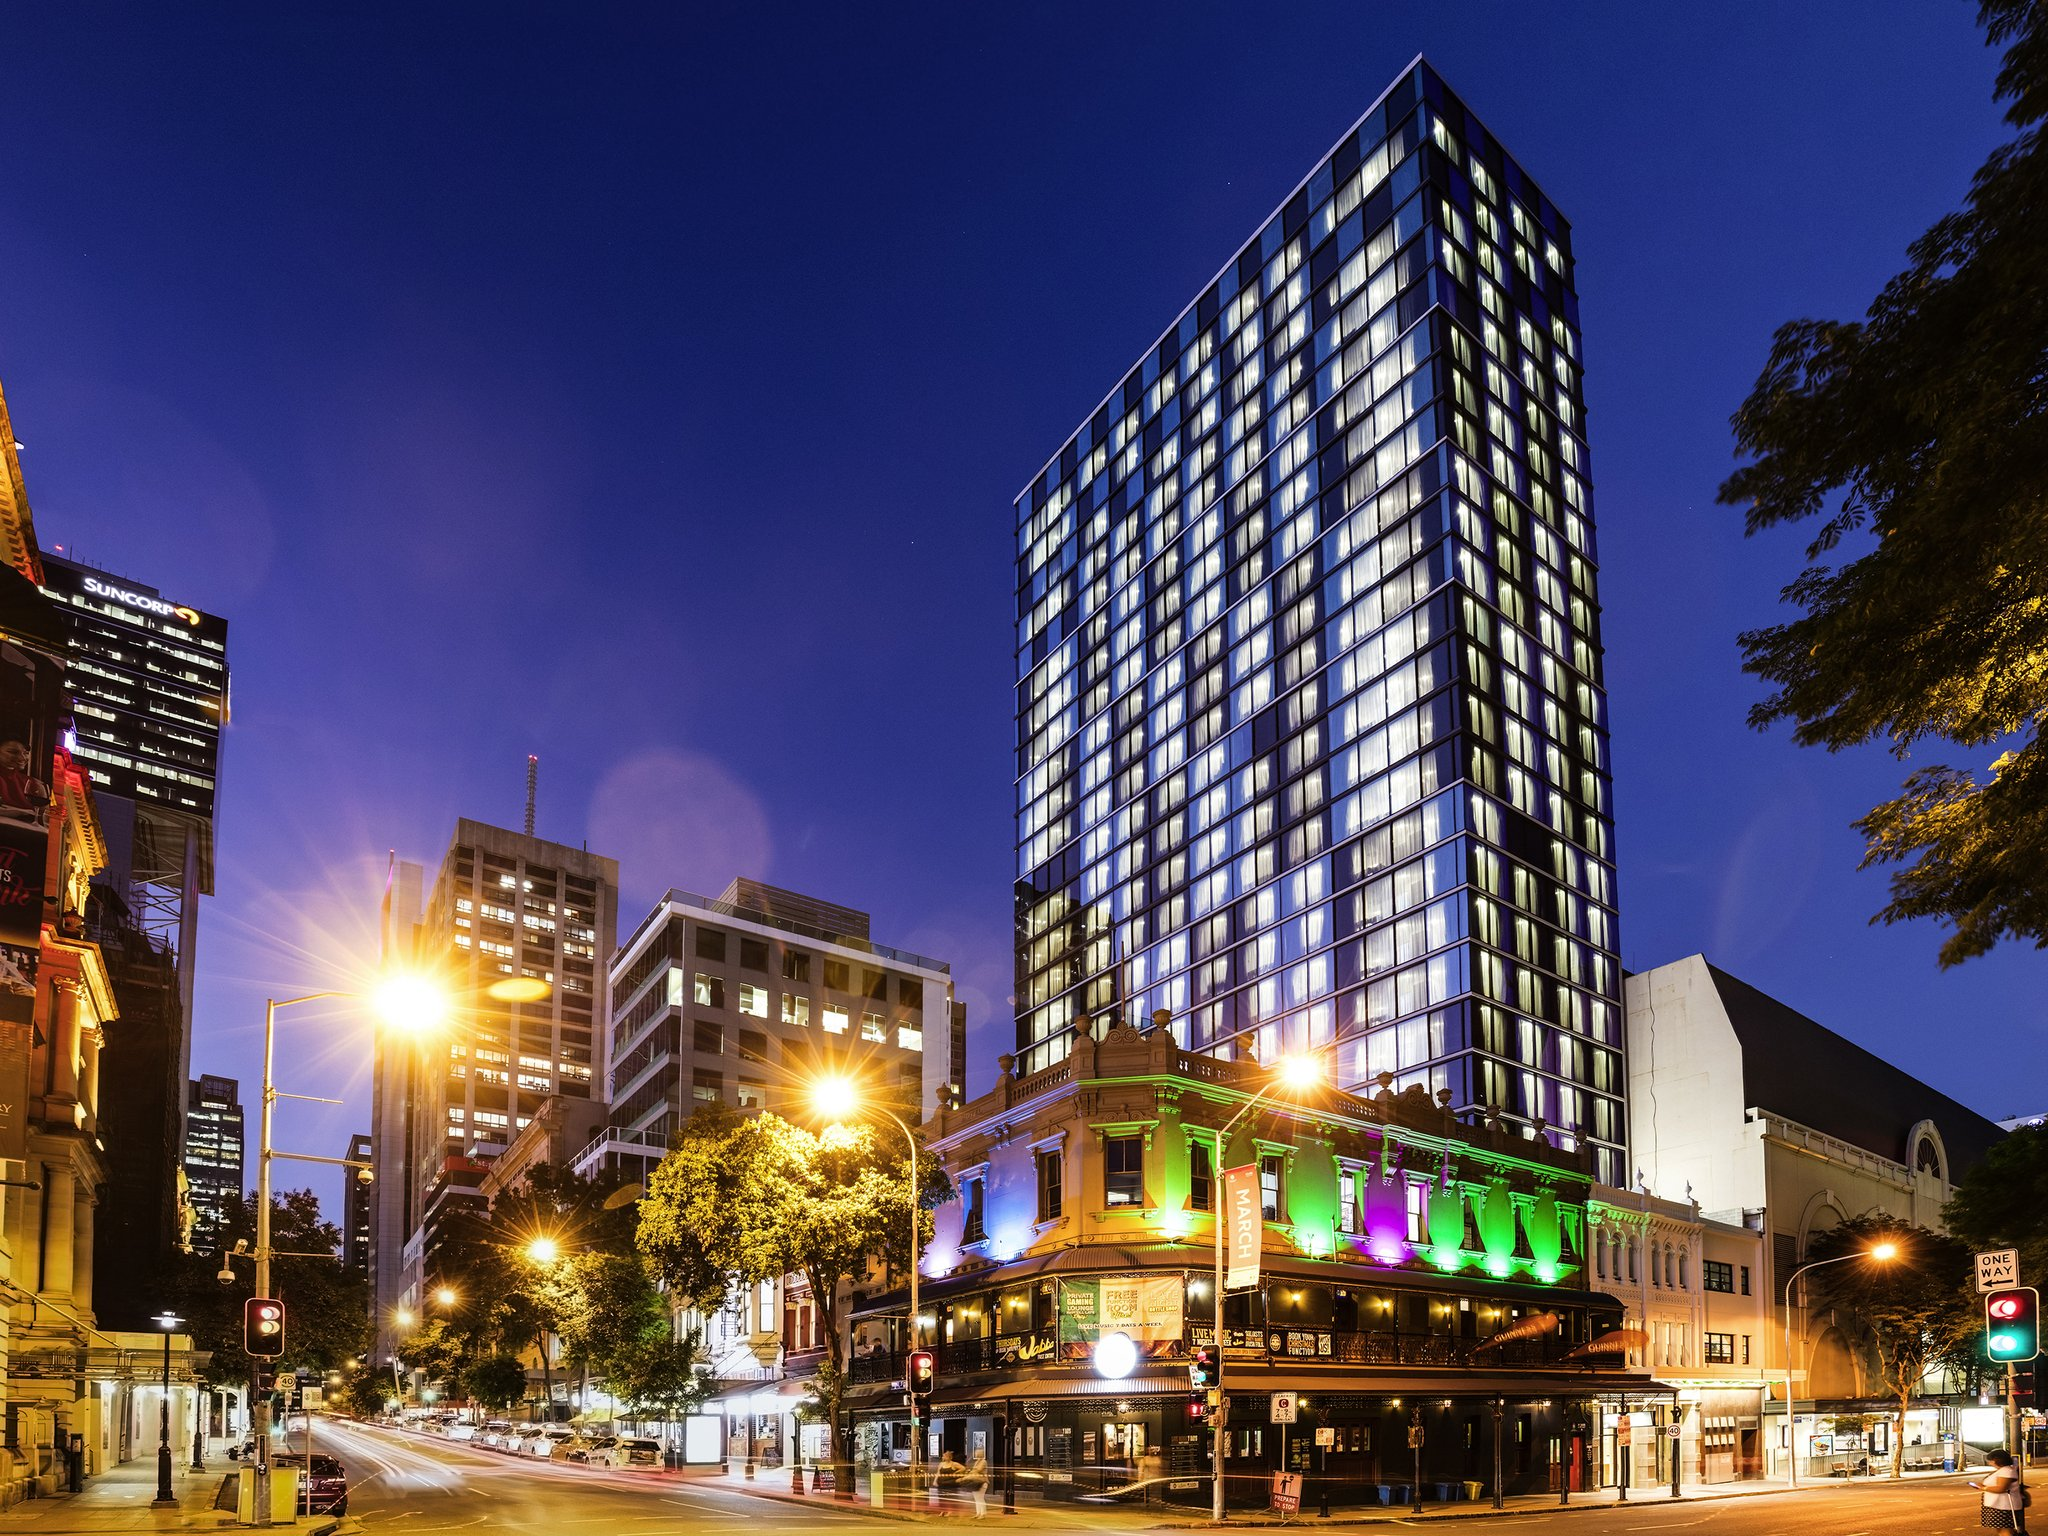 Ibis Styles Brisbane launches on Purchase Plus